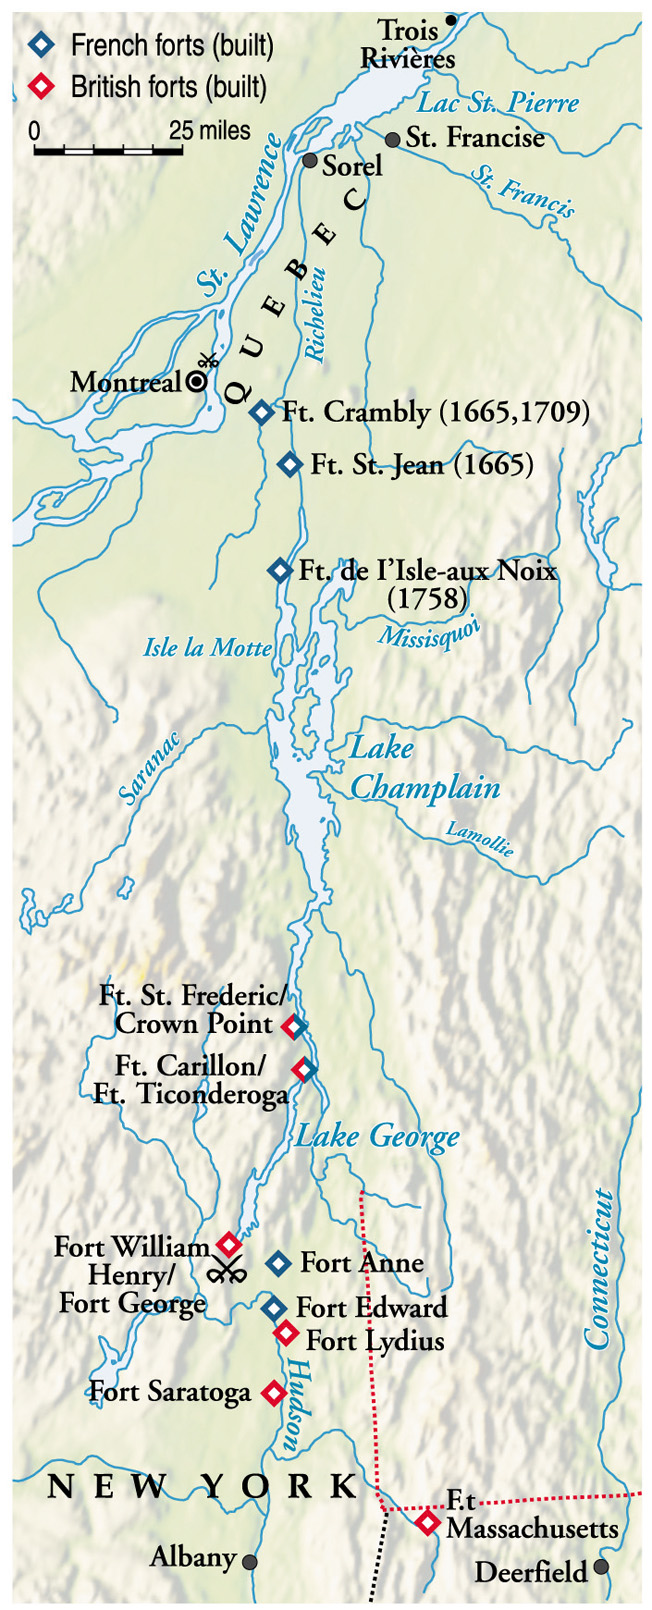 A Series of British forts and strong points safeguard the Hudson River valley in upstate New York.